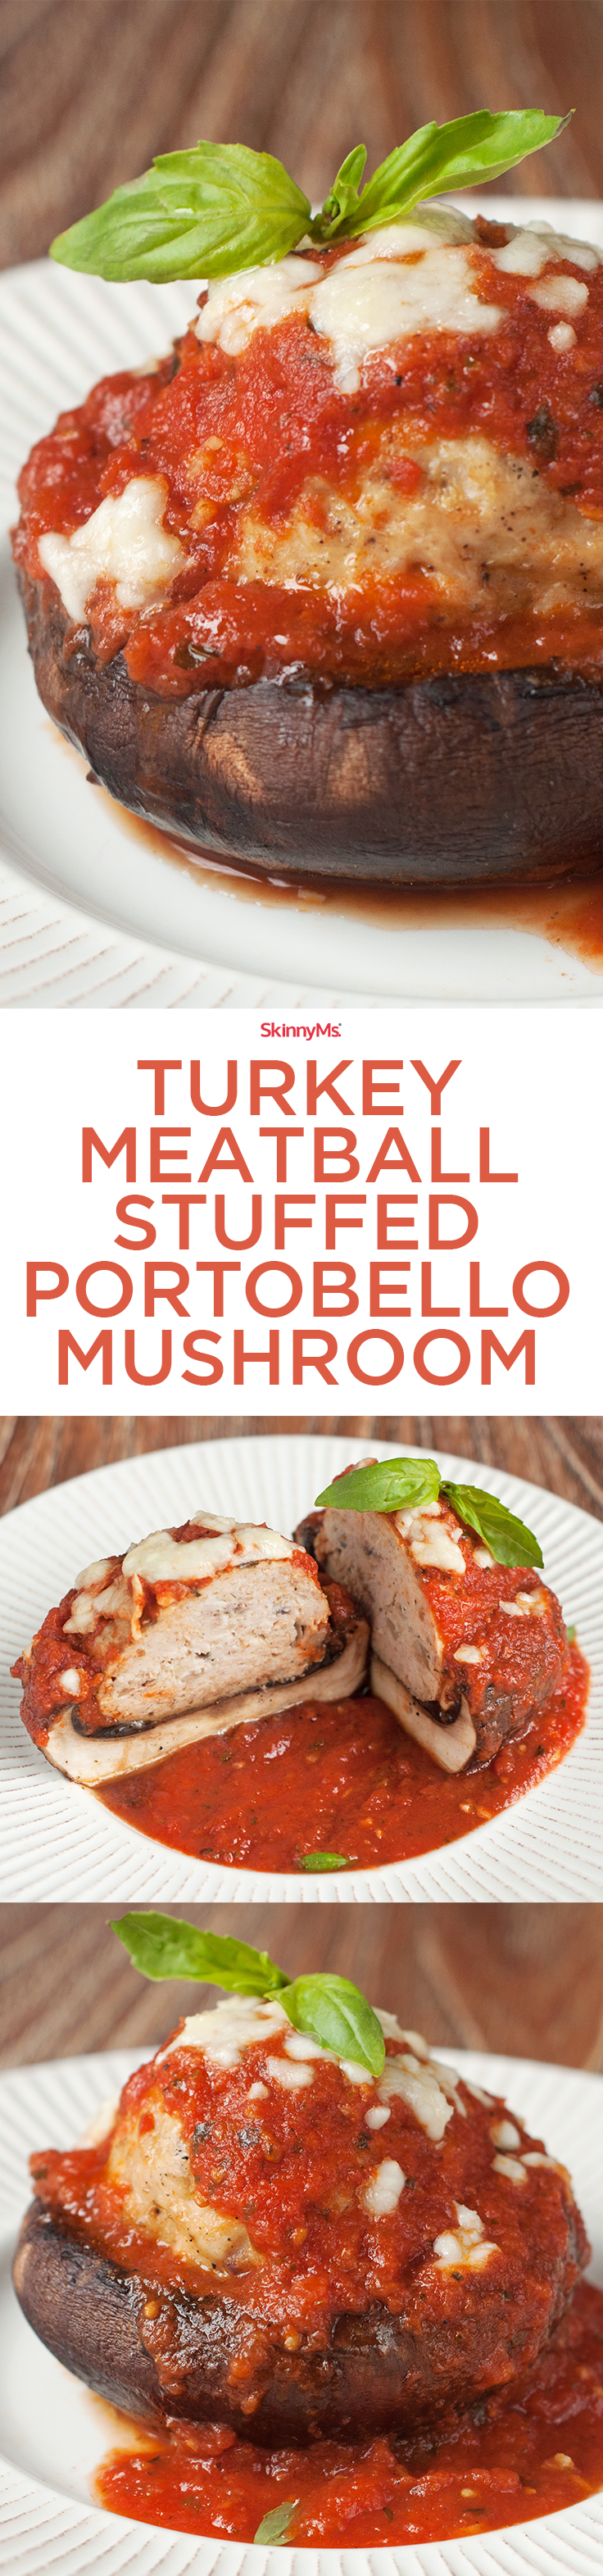 Turkey Meatball Stuffed Portobello Mushroom